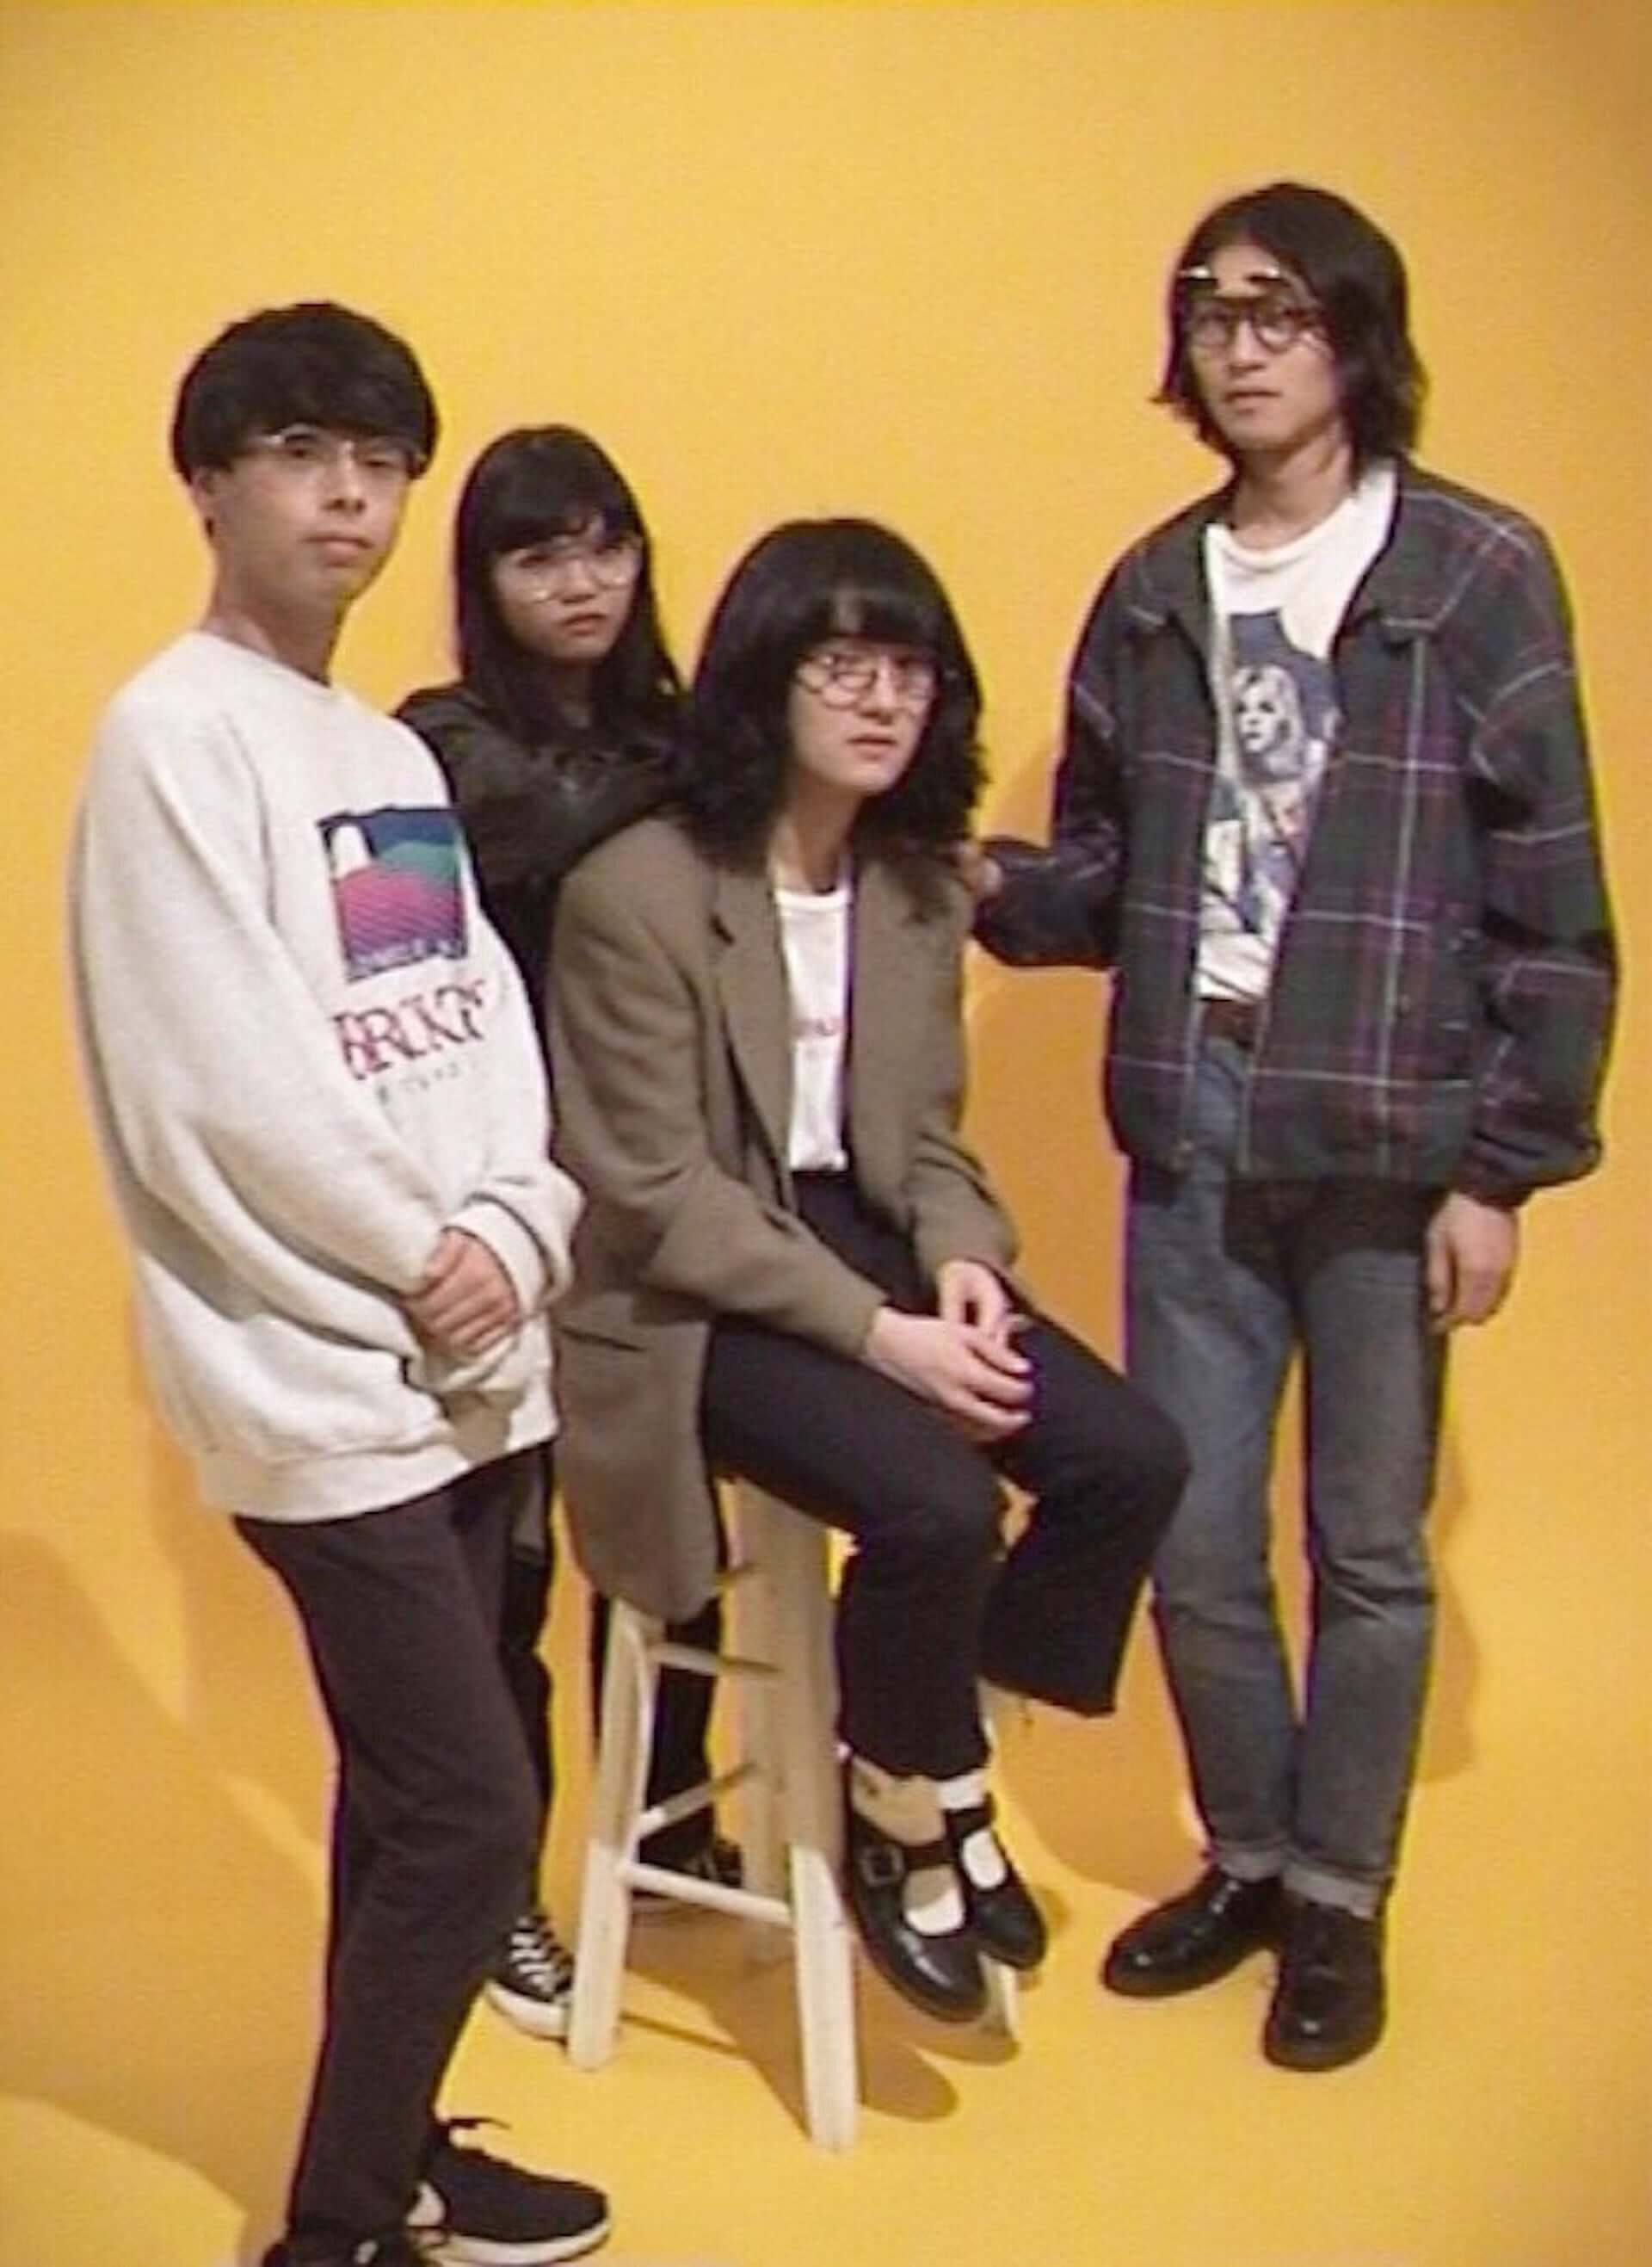 Bearwear主催<:CHAMBER FEST>にNo Buses、For Tracy Hydeが出演決定!渋谷clubasiaより無料生配信も実施 music201015_chamberfest_3-1920x2634